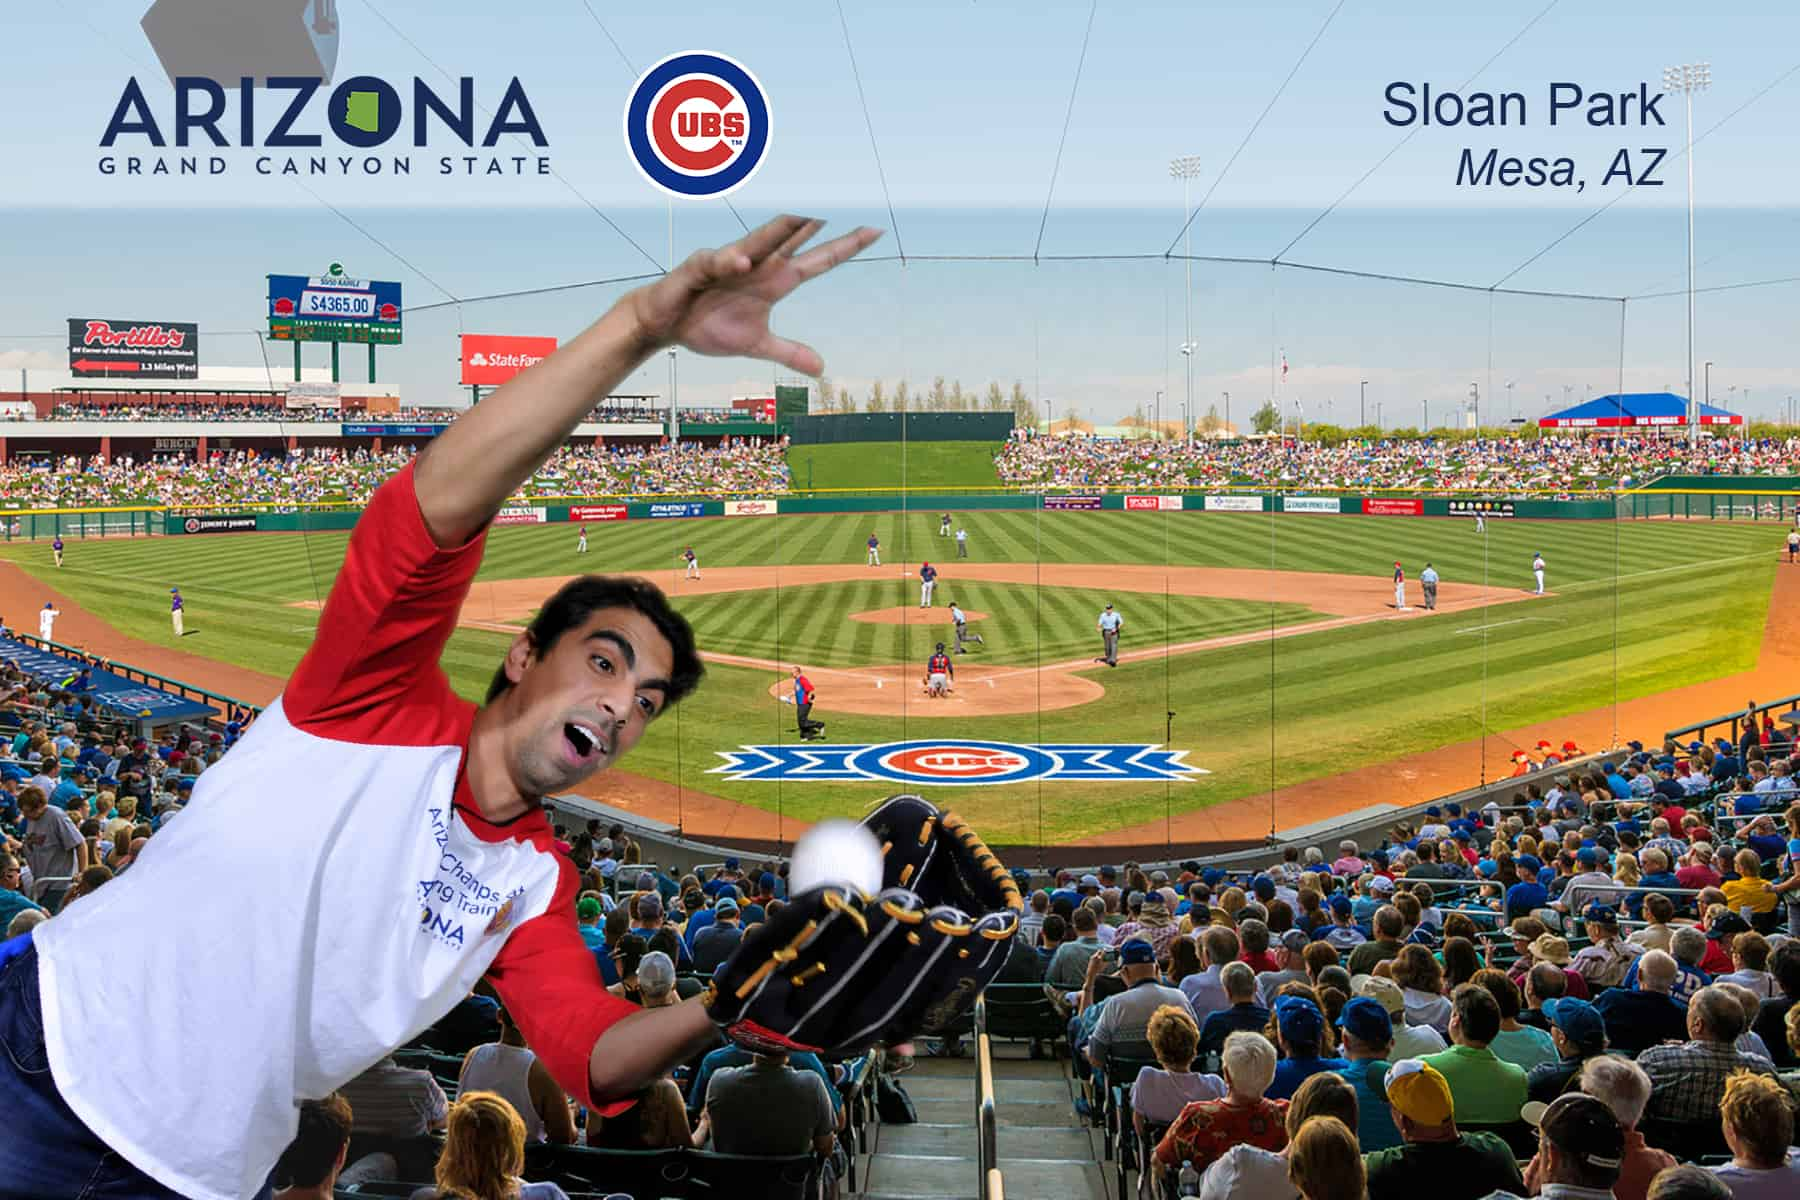 A fan and a foul ballChicago Experiential Photo marketing event with Arizona Office of Tourism.